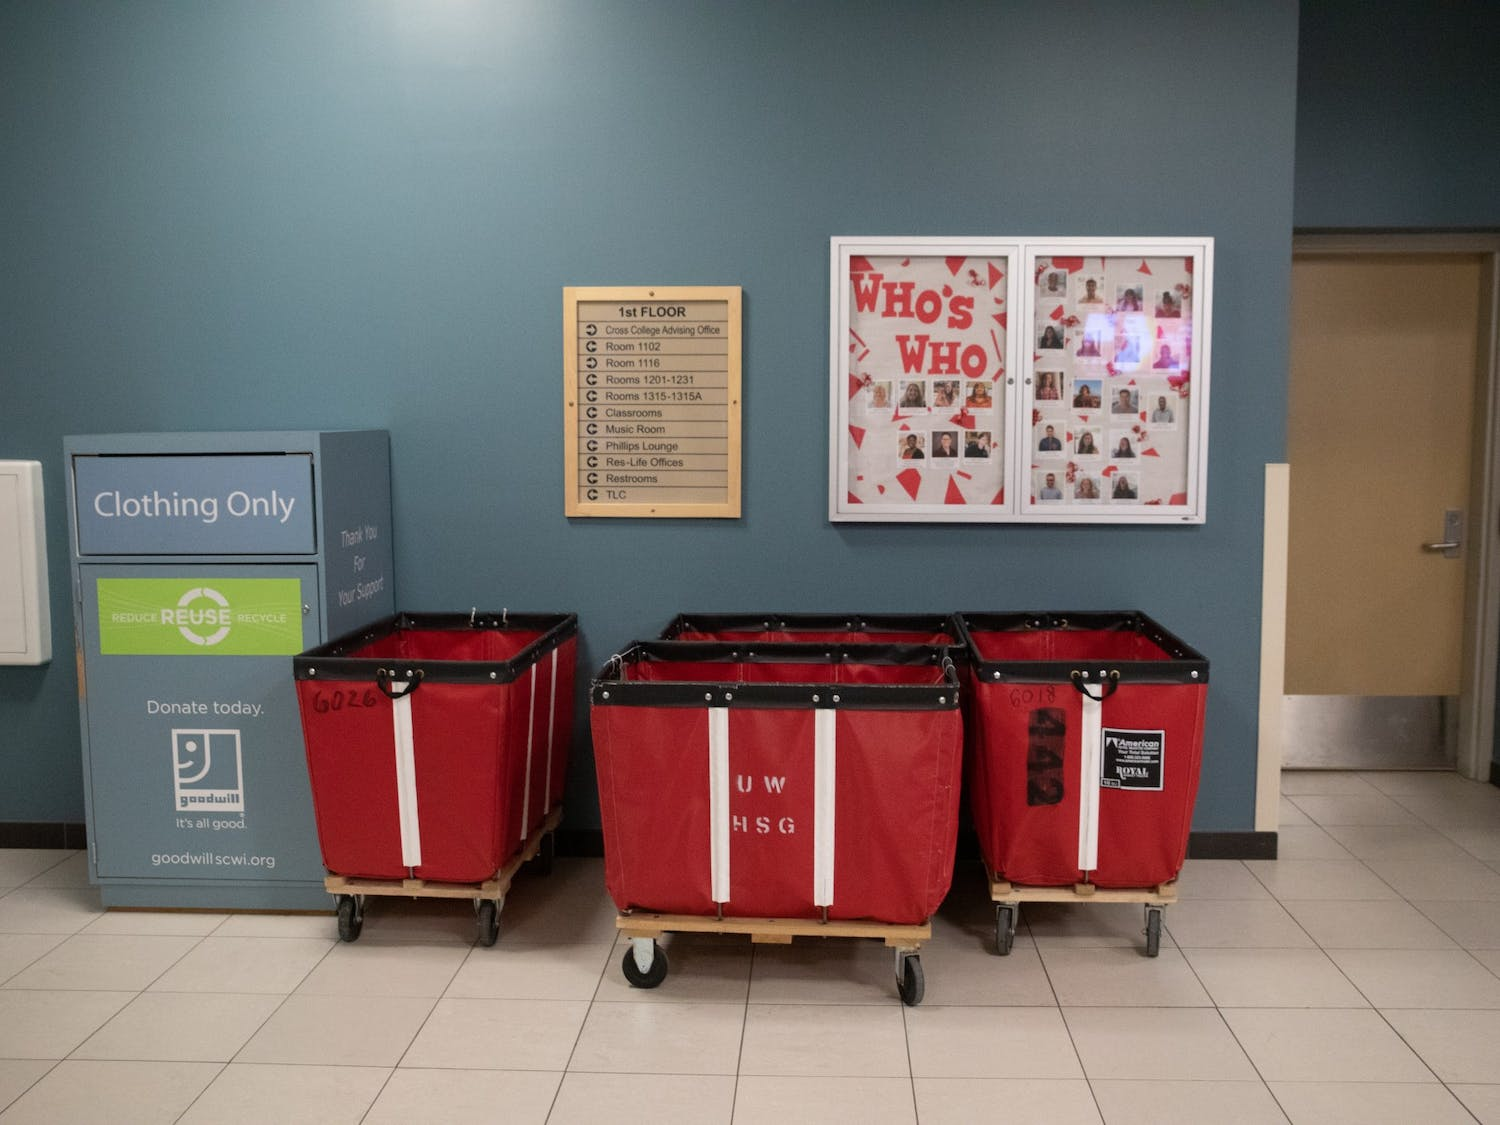 Following Gov. Tony Evers Stay At Home order, the university cancelled all moveout appointments and decided to store the leftover student items.